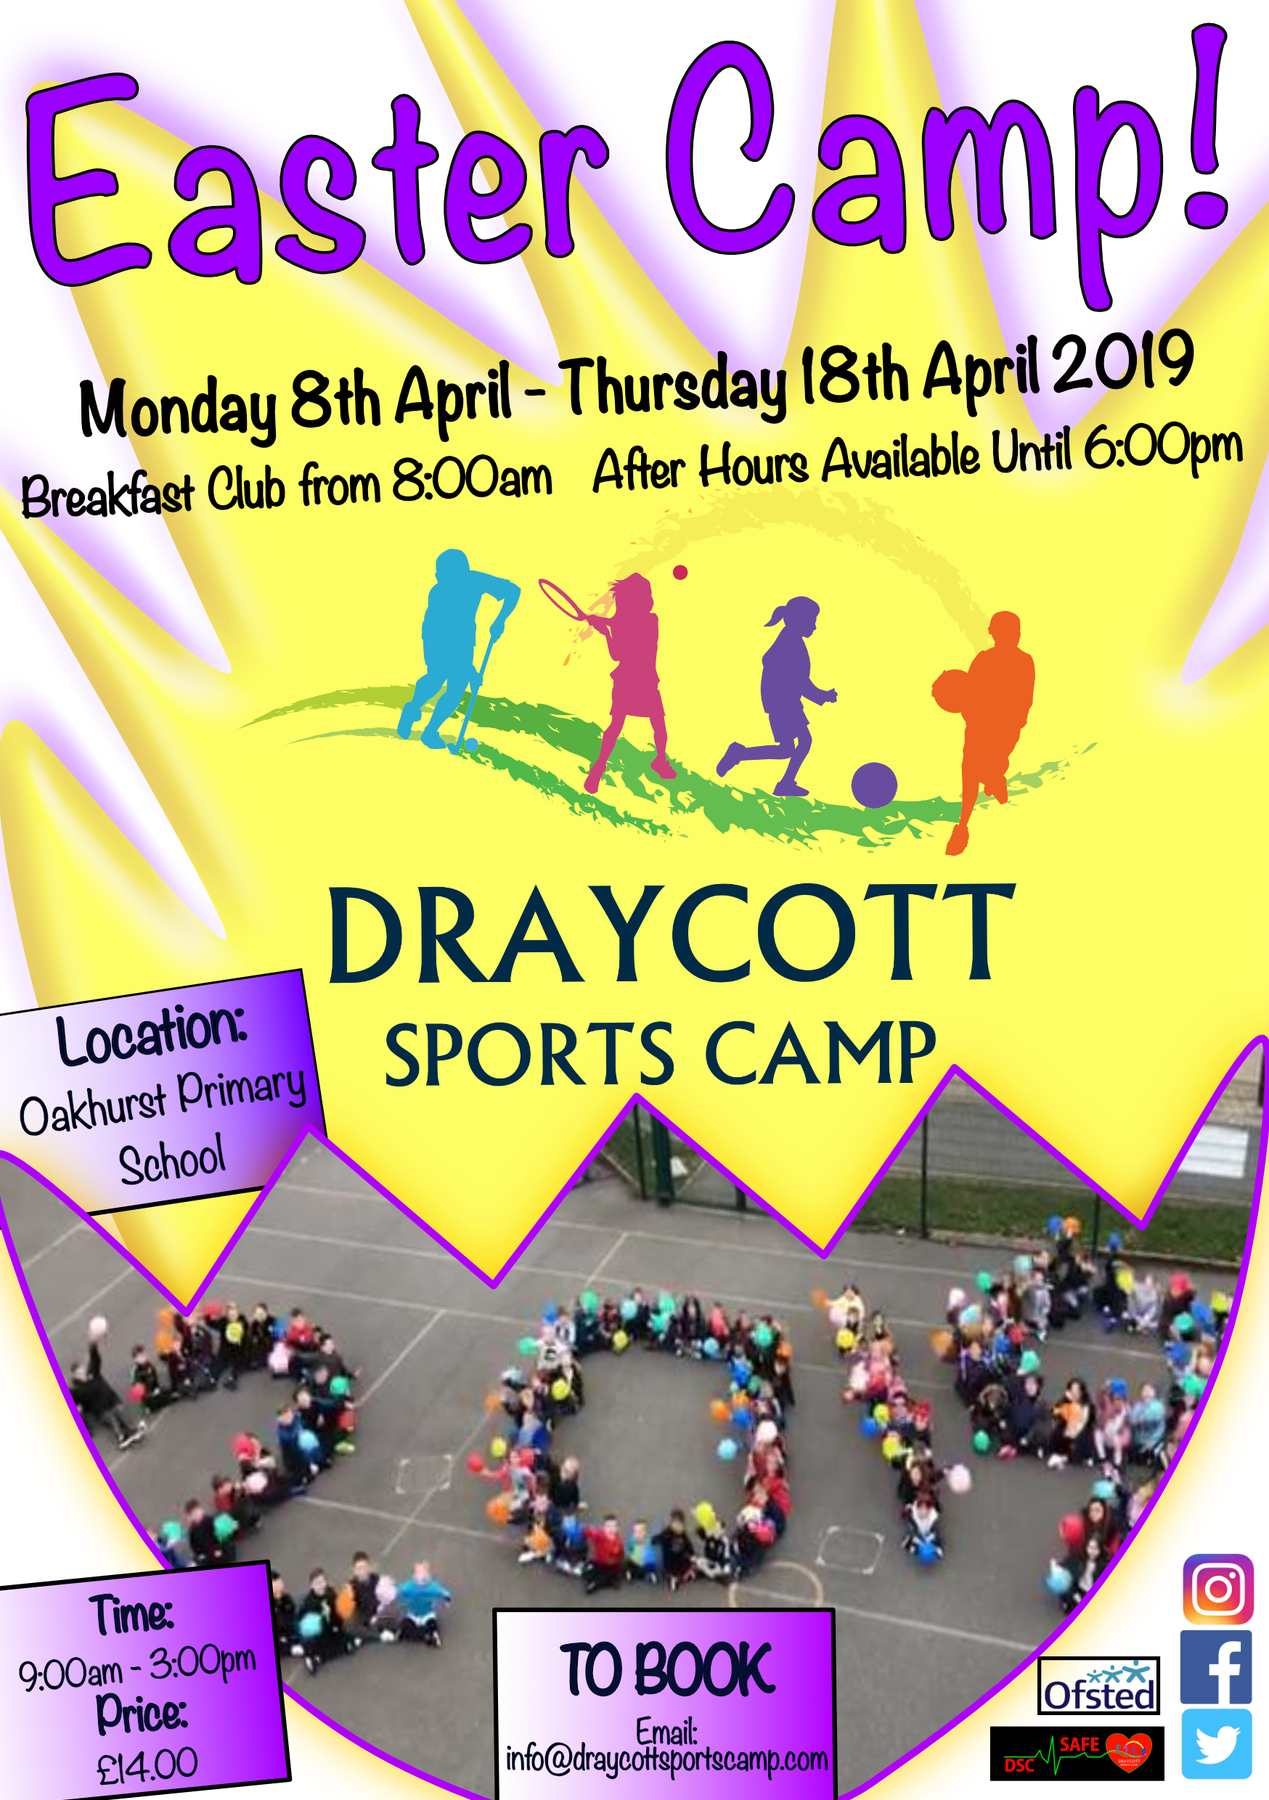 Draycott's Easter Camp